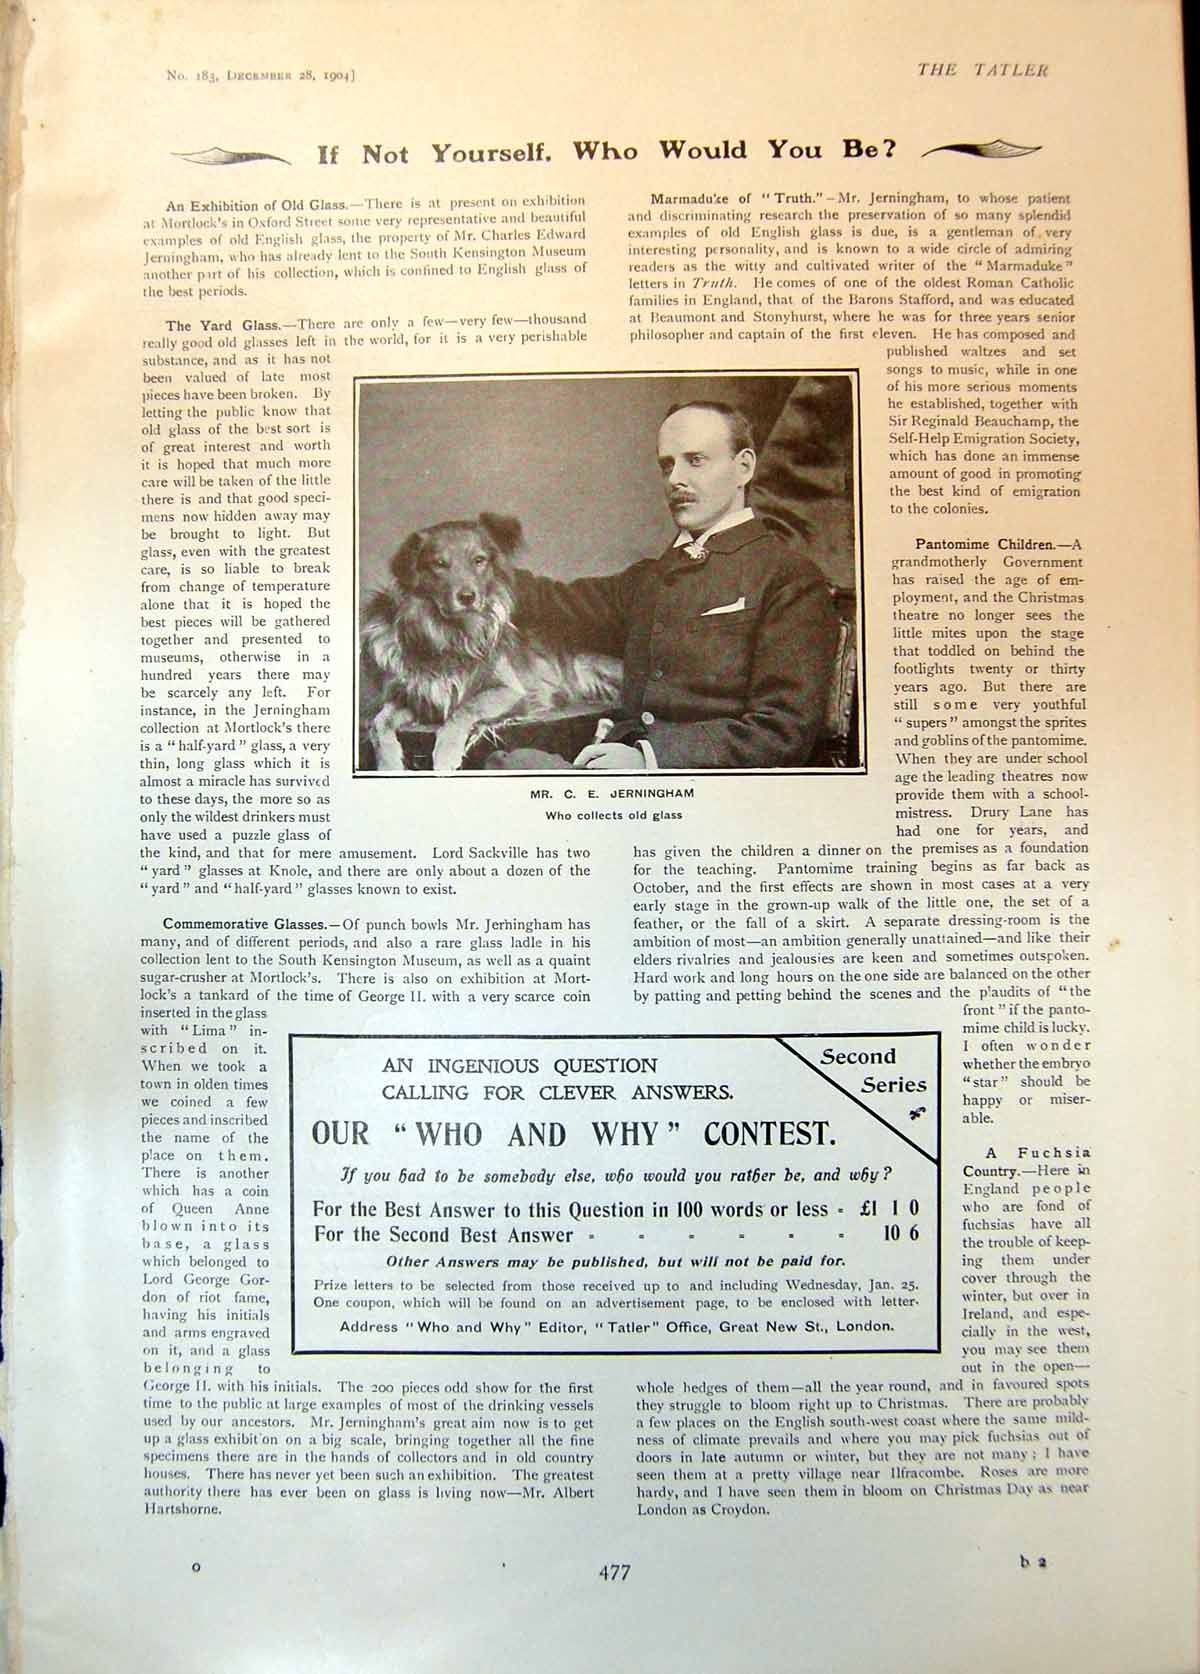 [Print C Jerningham Dog Collects Glass Who And Why Contest 1904 477Q014 Old Original]